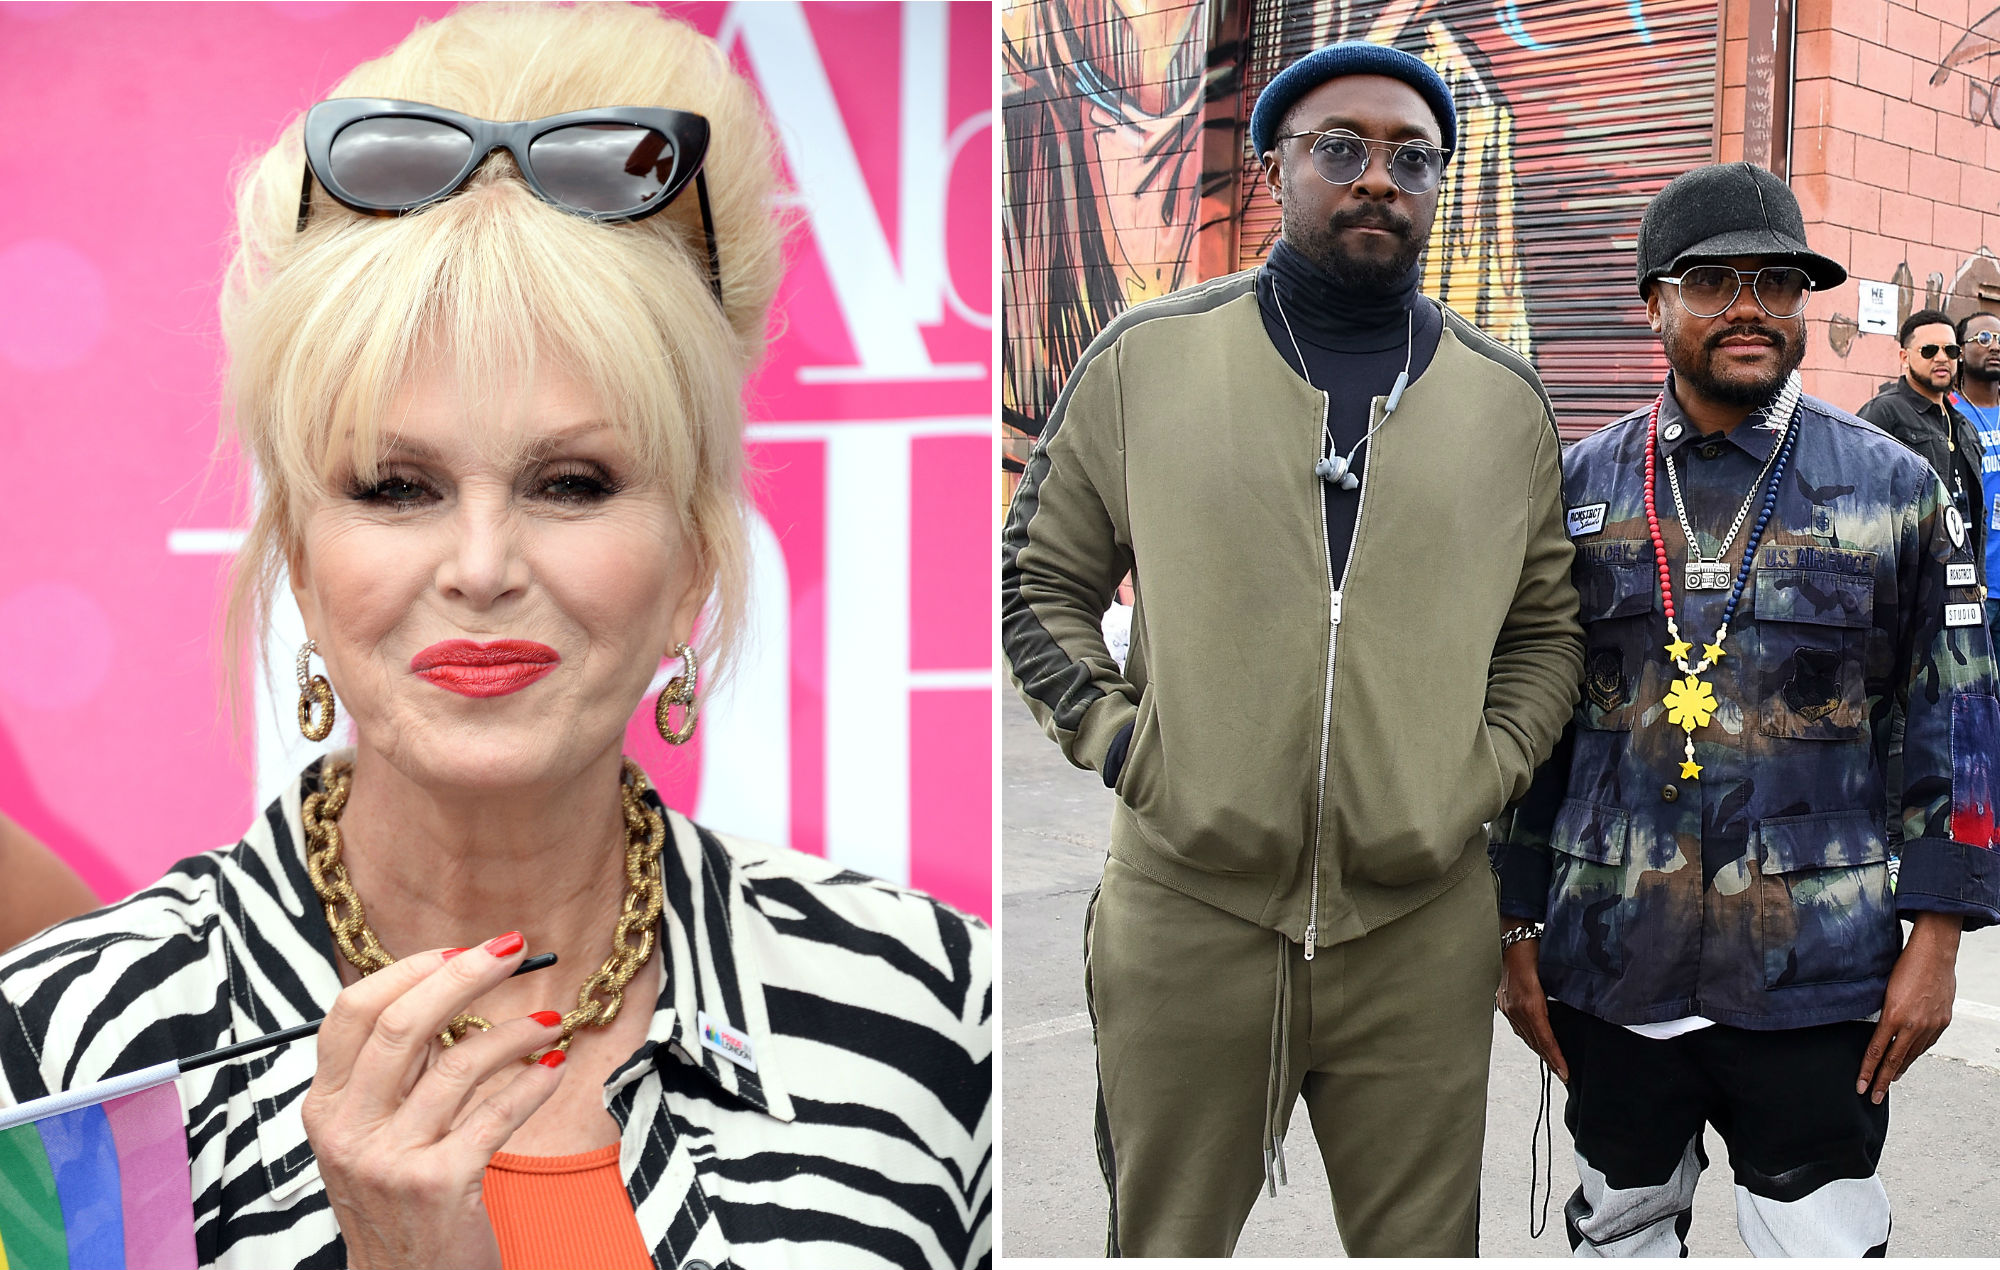 NME Festival blog: Joanna Lumley is hosting a Black Eyed Peas TV special and everyone is confused